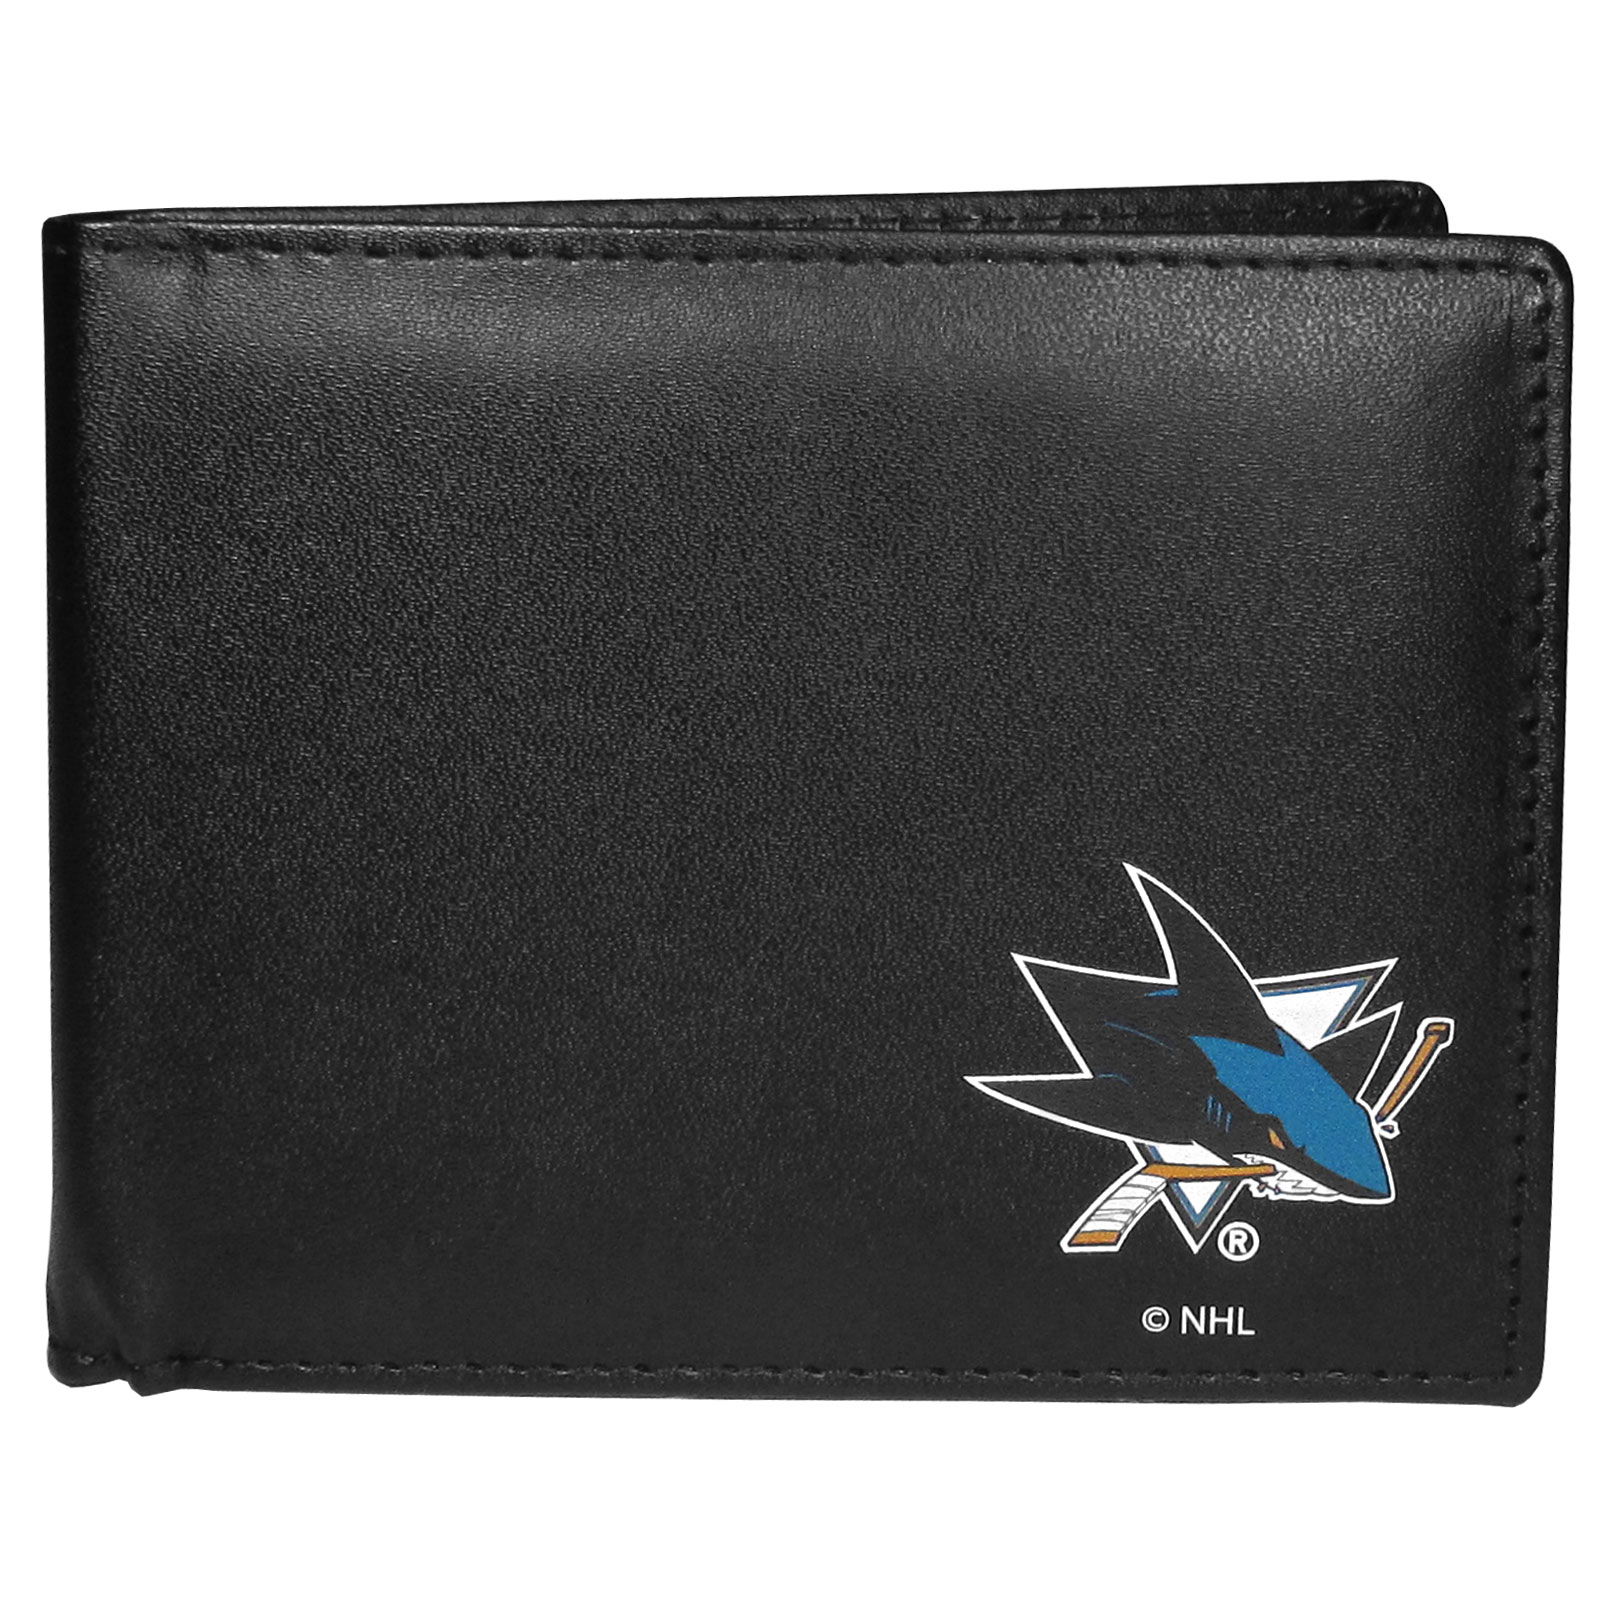 San Jose Sharks Bi-fold Wallet - Sports fans do not have to sacrifice style with this classic bi-fold wallet that sports a San Jose Sharks emblem. This men's fashion accessory has a leather grain look and expert craftmanship for a quality wallet at a great price. The wallet features inner credit card slots, windowed ID slot and a large billfold pocket. The front of the wallet features a printed team logo.